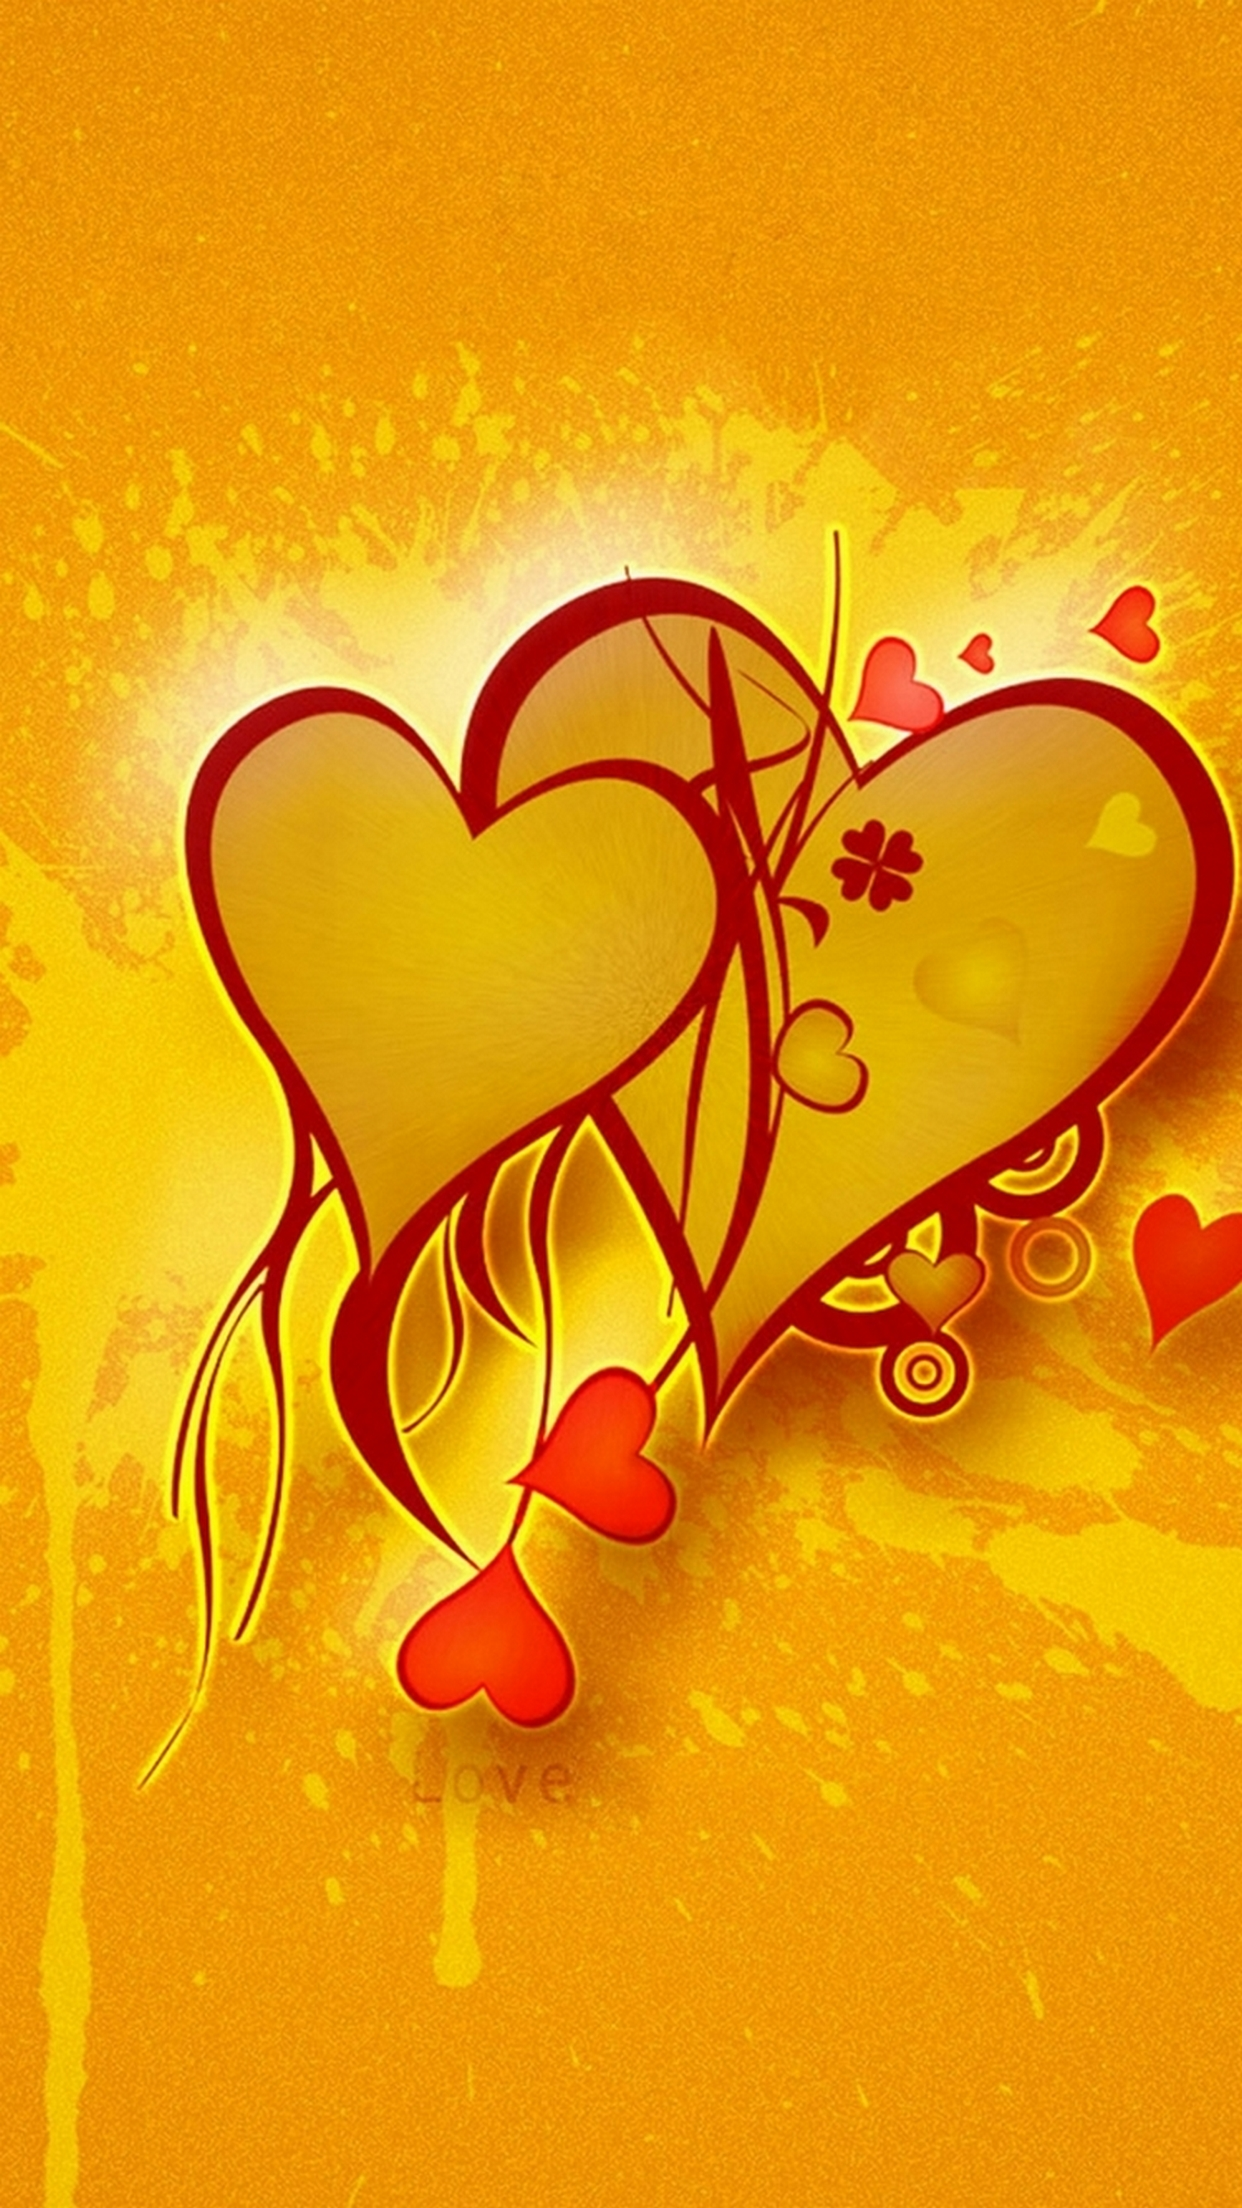 hd wallpapers for mobile,heart,love,illustration,valentine's day,yellow